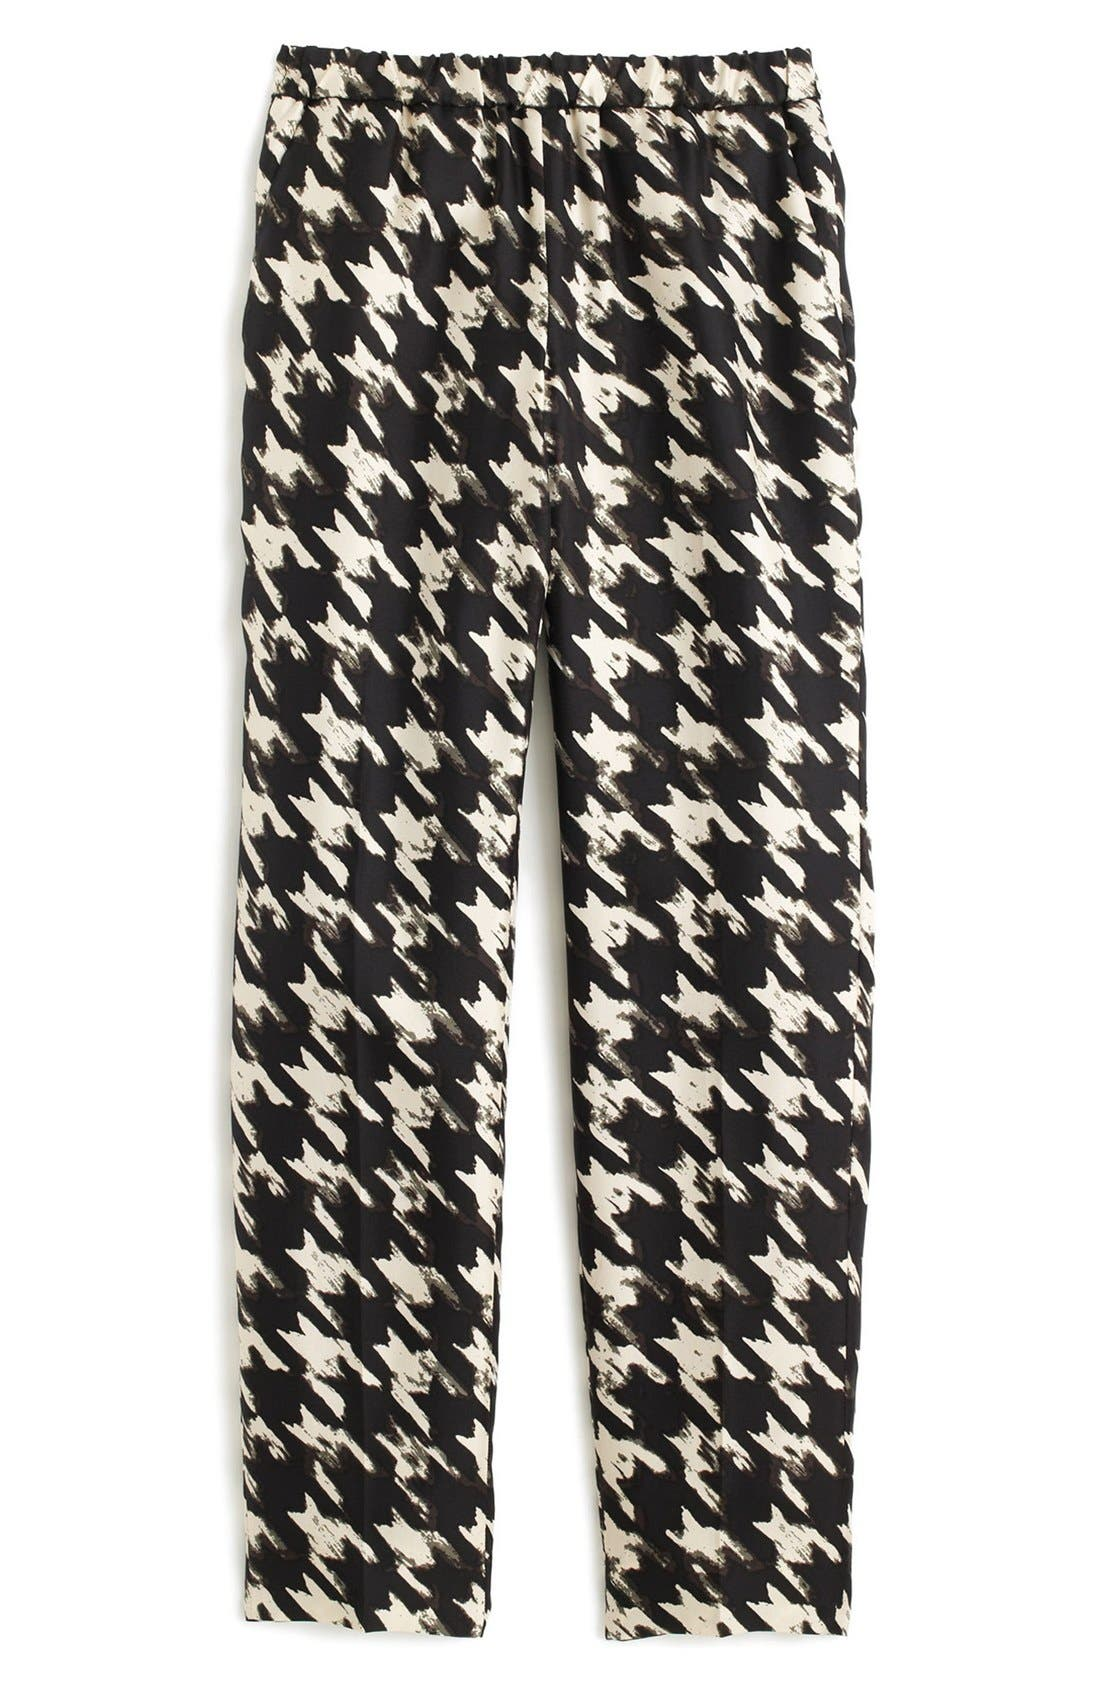 J.CREW, Forrester Wolfstooth Silk Pants, Alternate thumbnail 3, color, 901